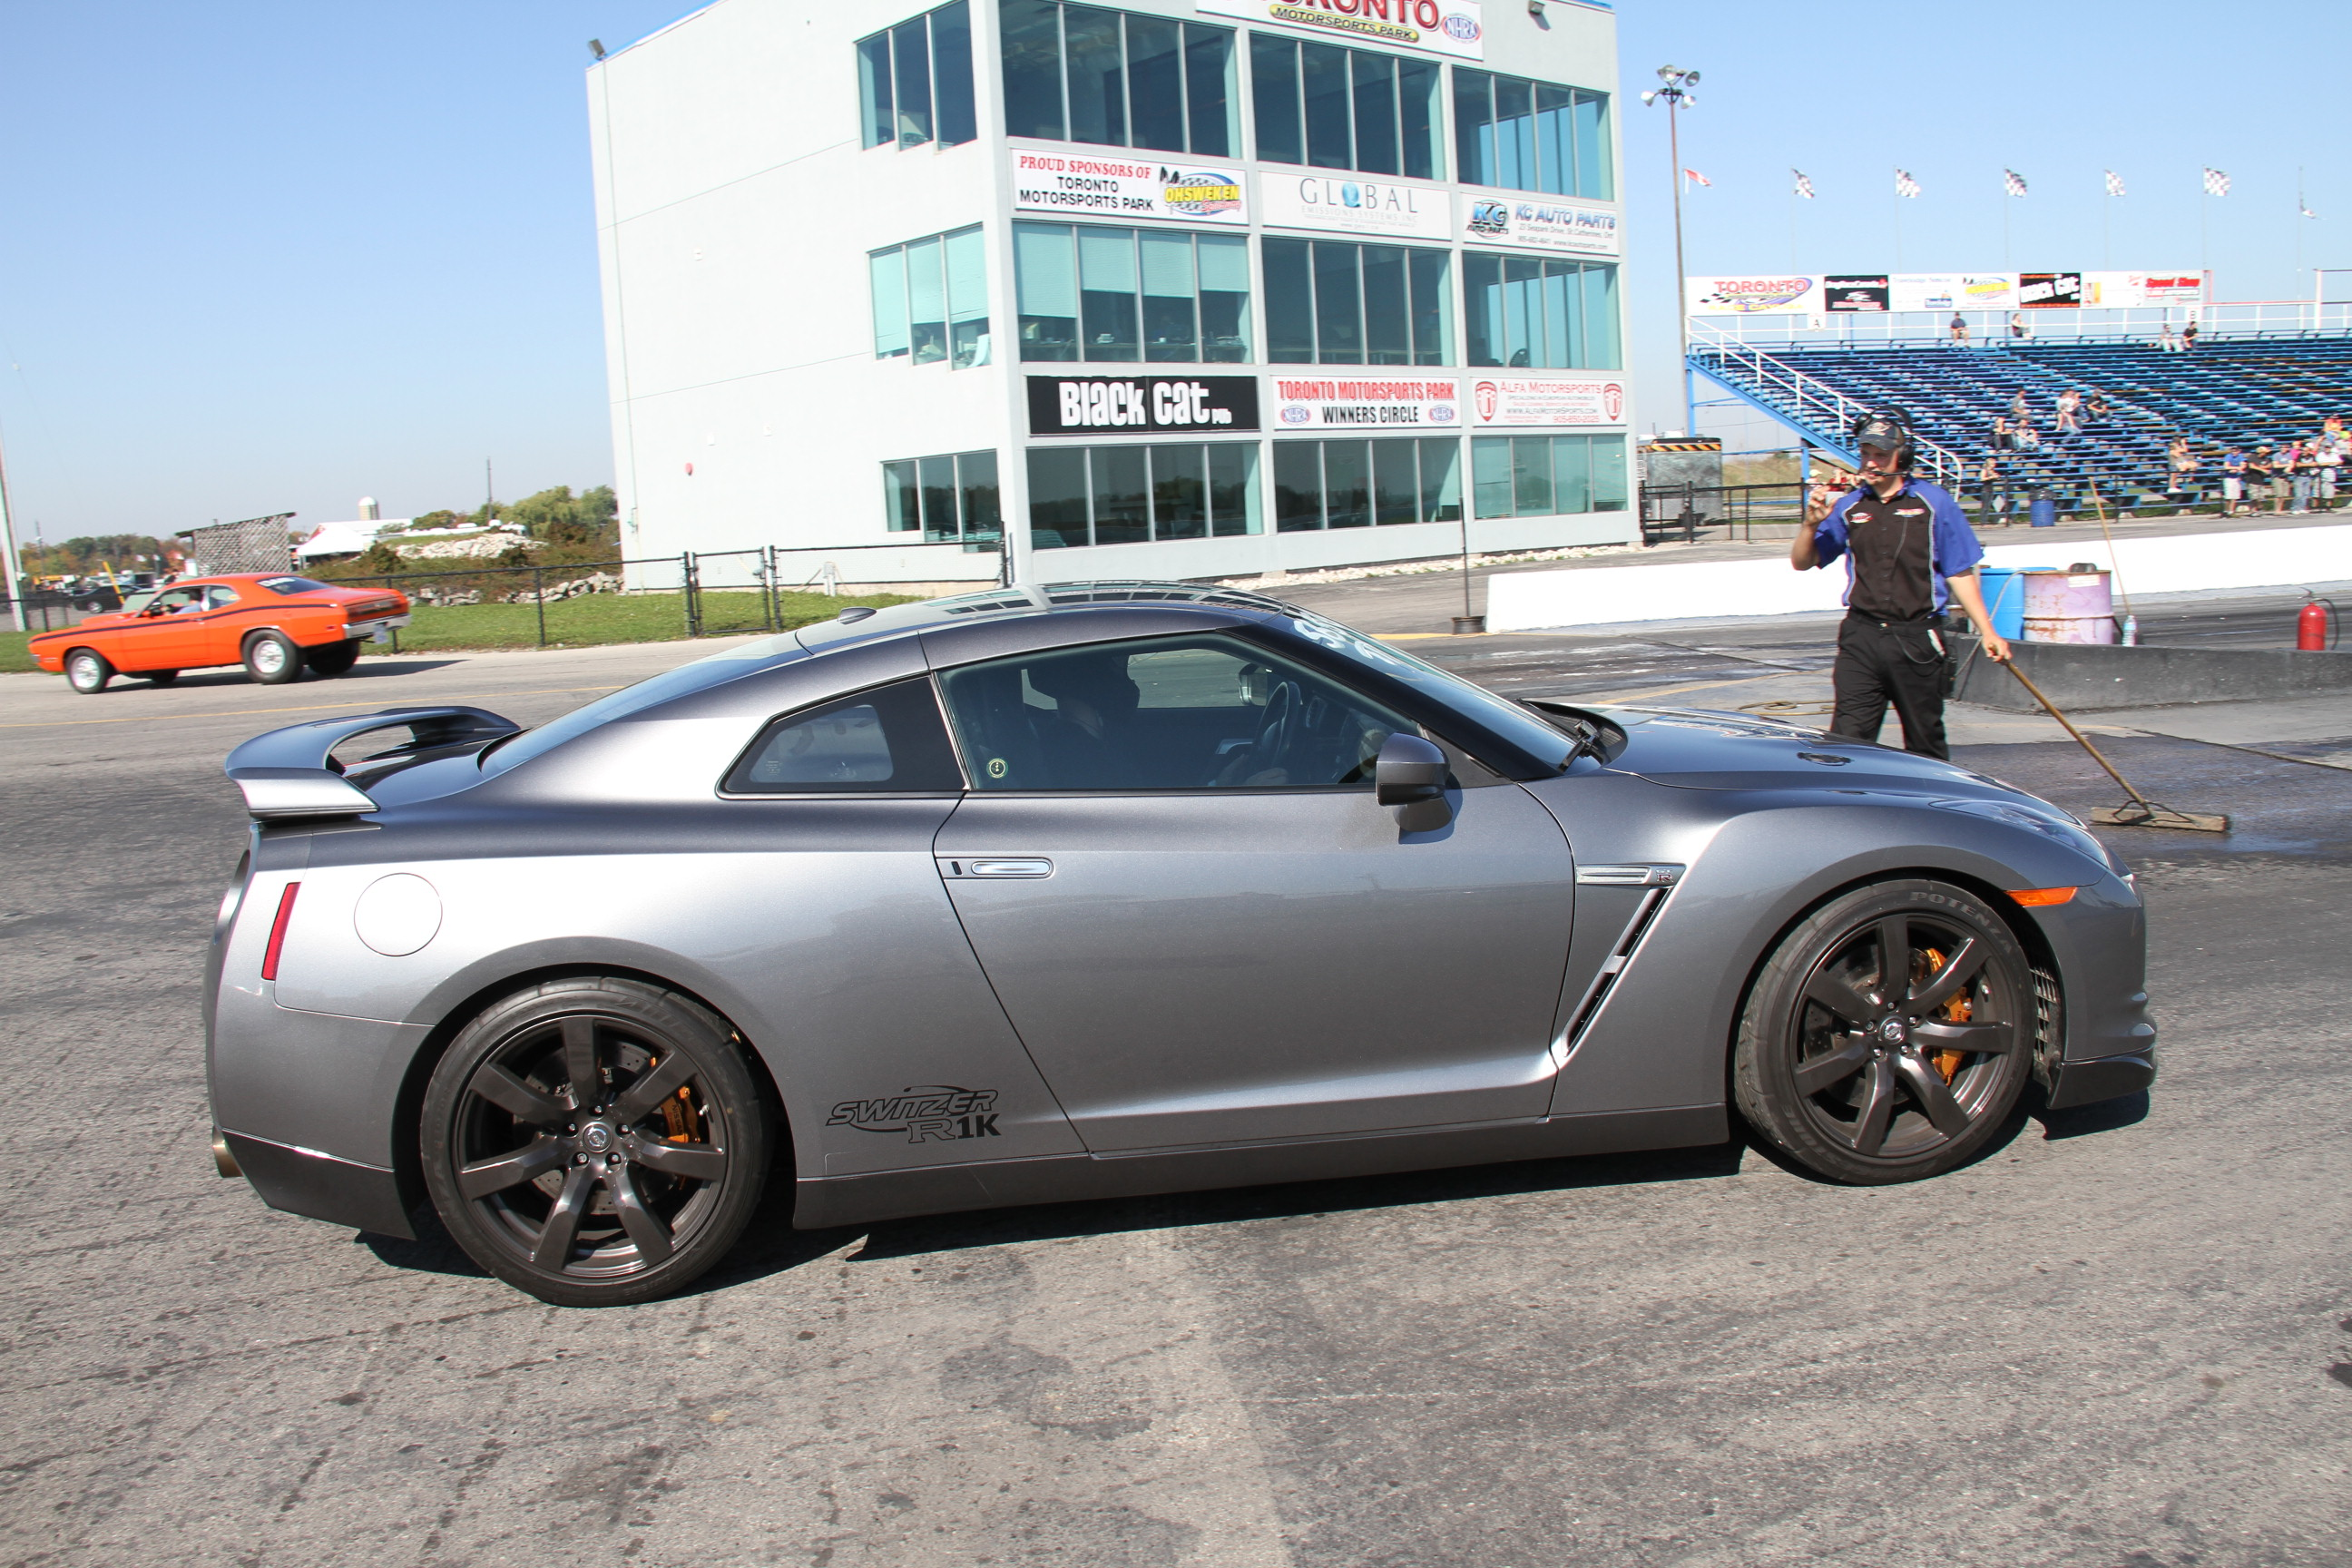 2010 Nissan GT R Switzer R1K Pump Gas 1 4 mile trap speeds 0 60